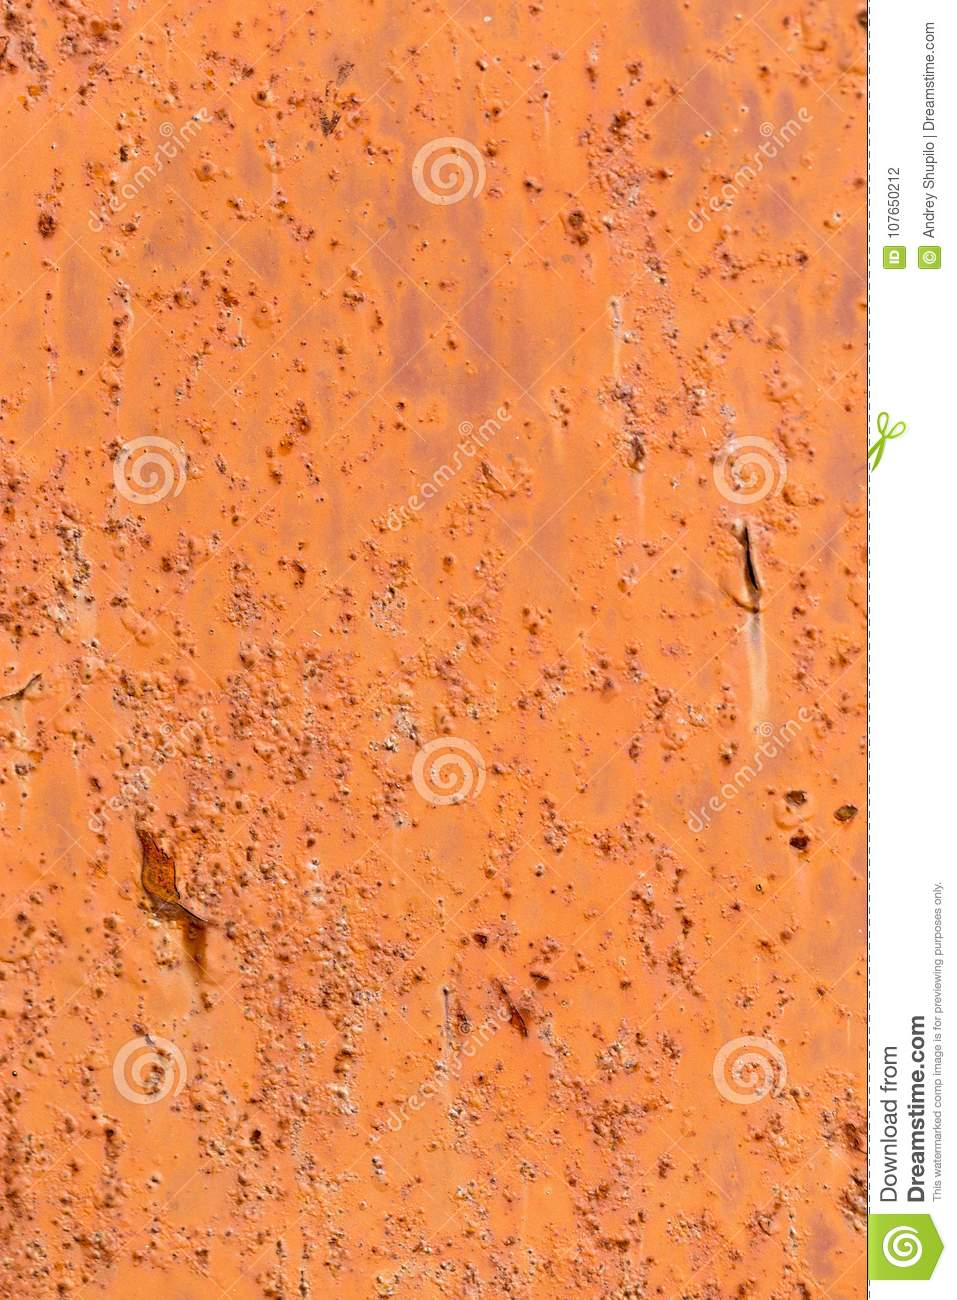 Abstract Background Of Rusty Metal Stock Photo - Image of ...